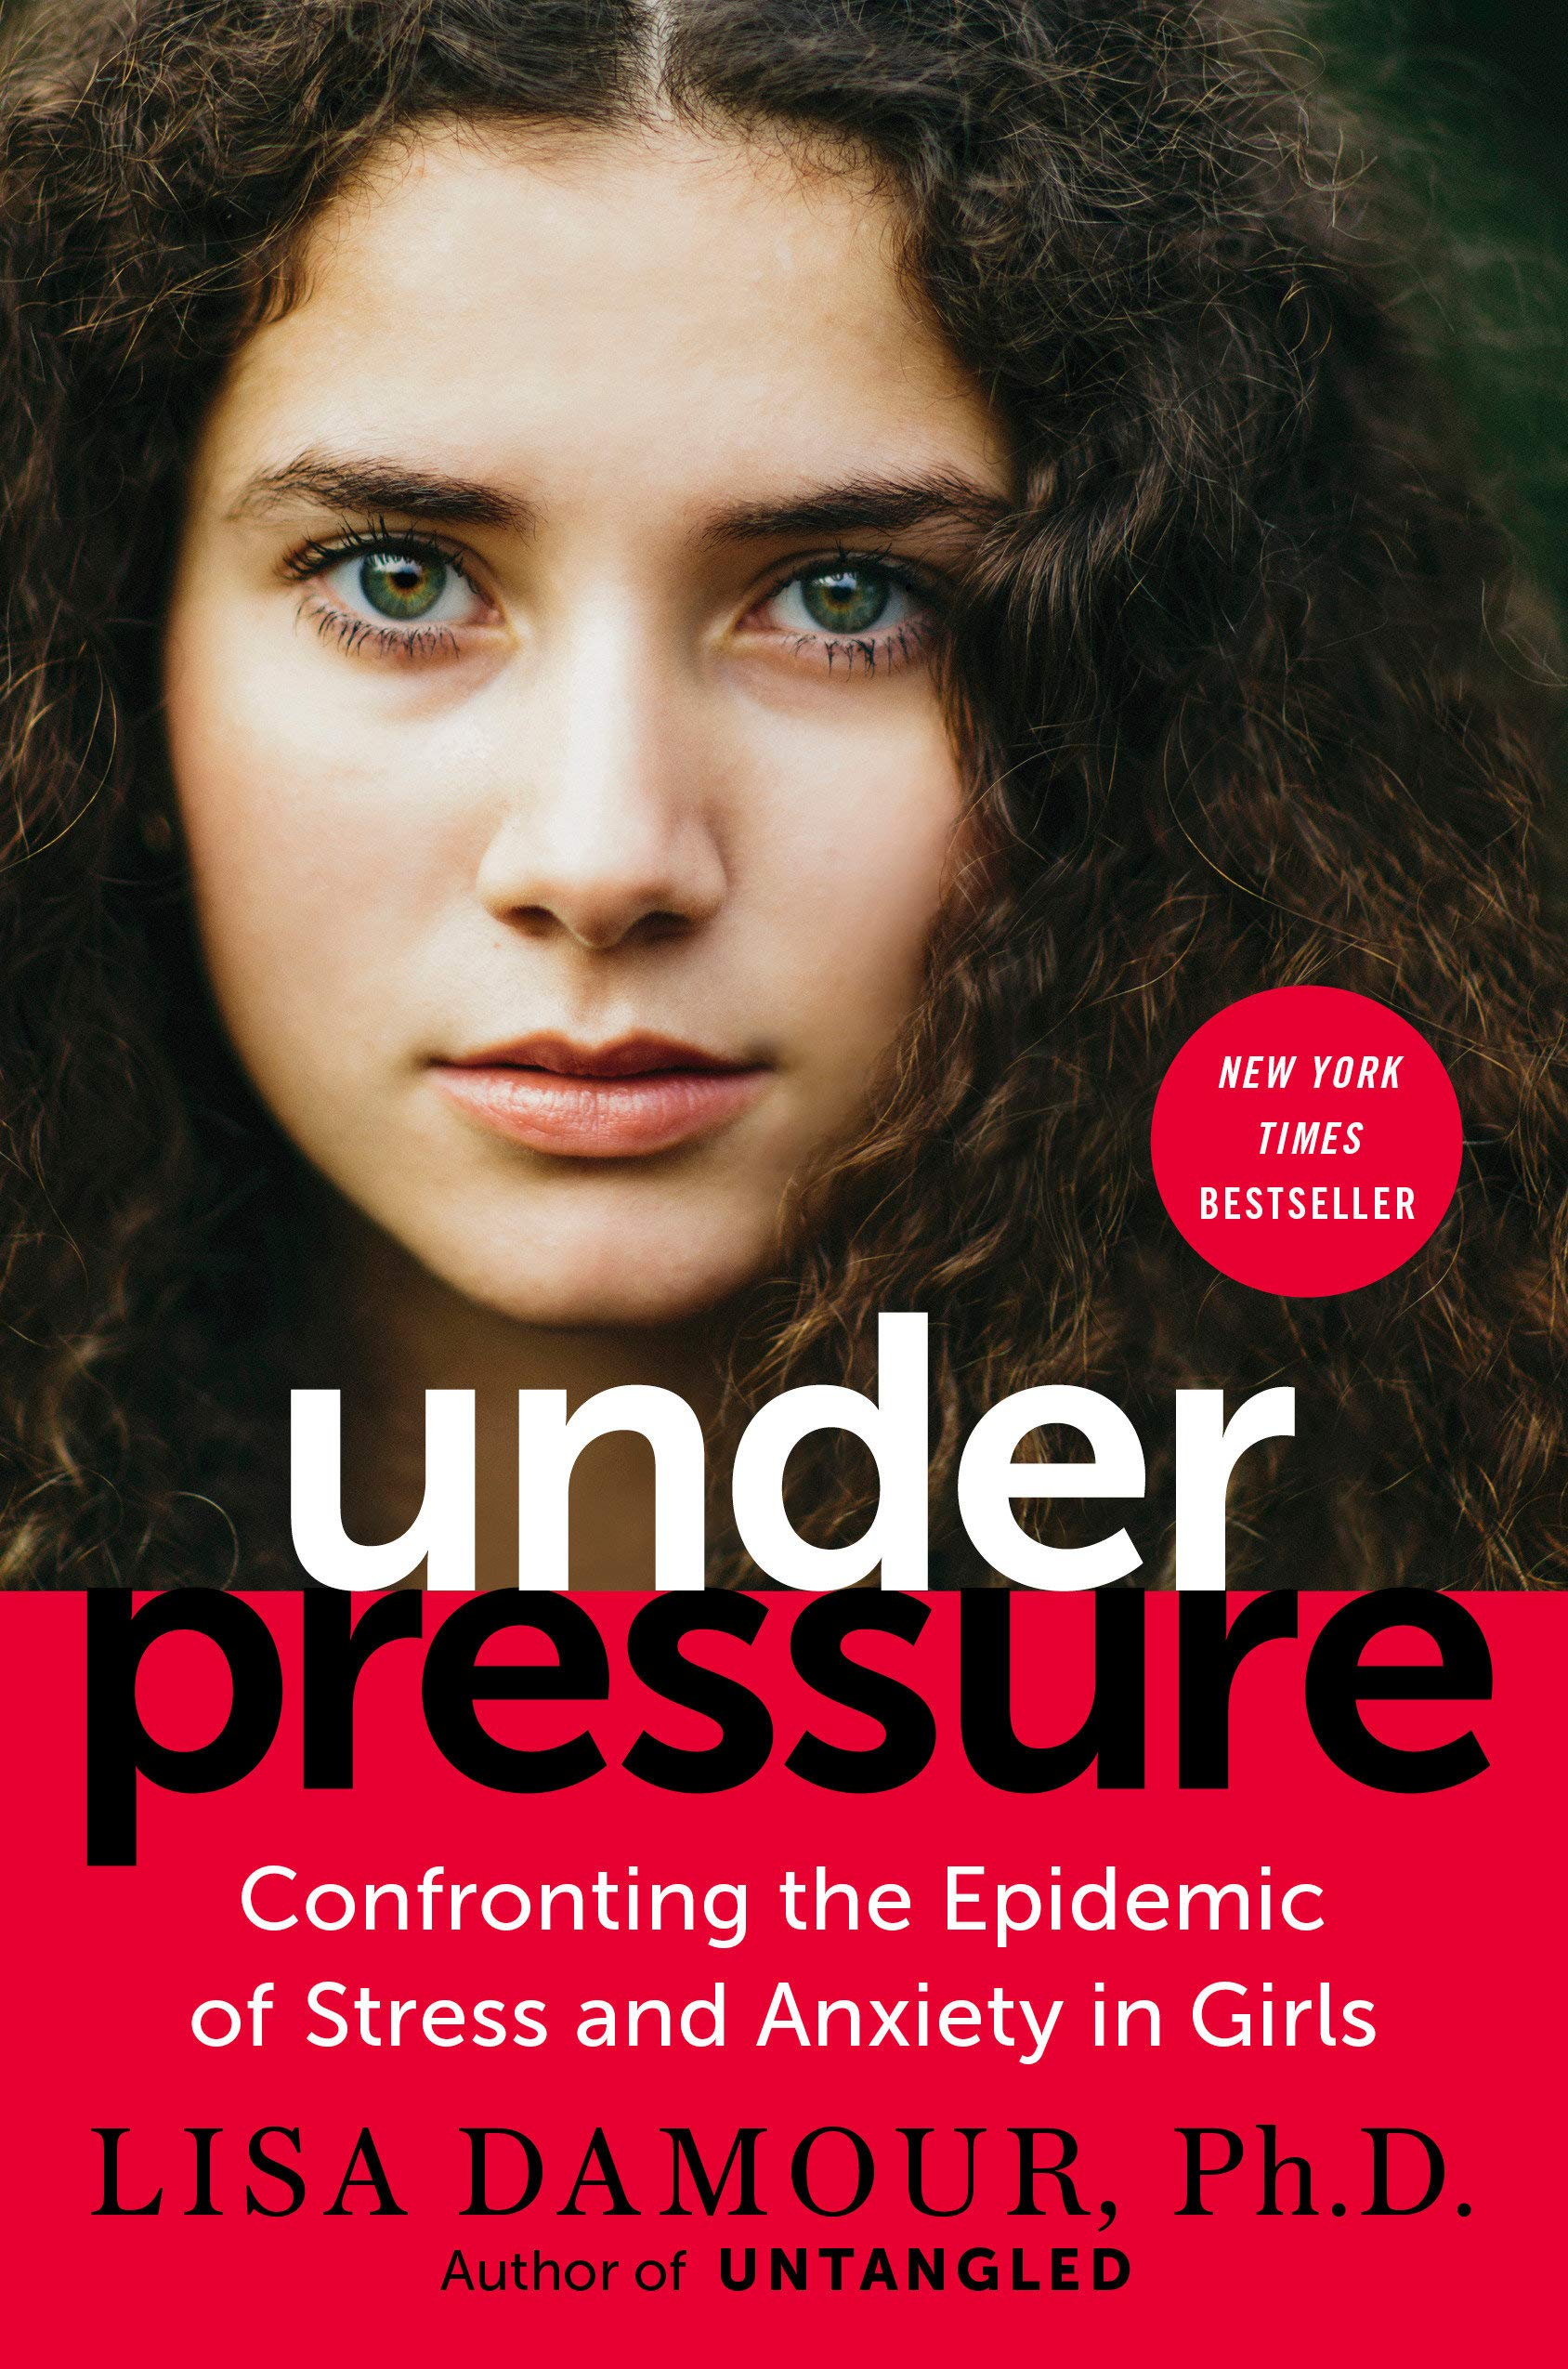 Under Pressure: Confronting the Epidemic of Stress and Anxiety in Girls:  Damour Ph.D., Lisa: 9780399180057: Amazon.com: Books